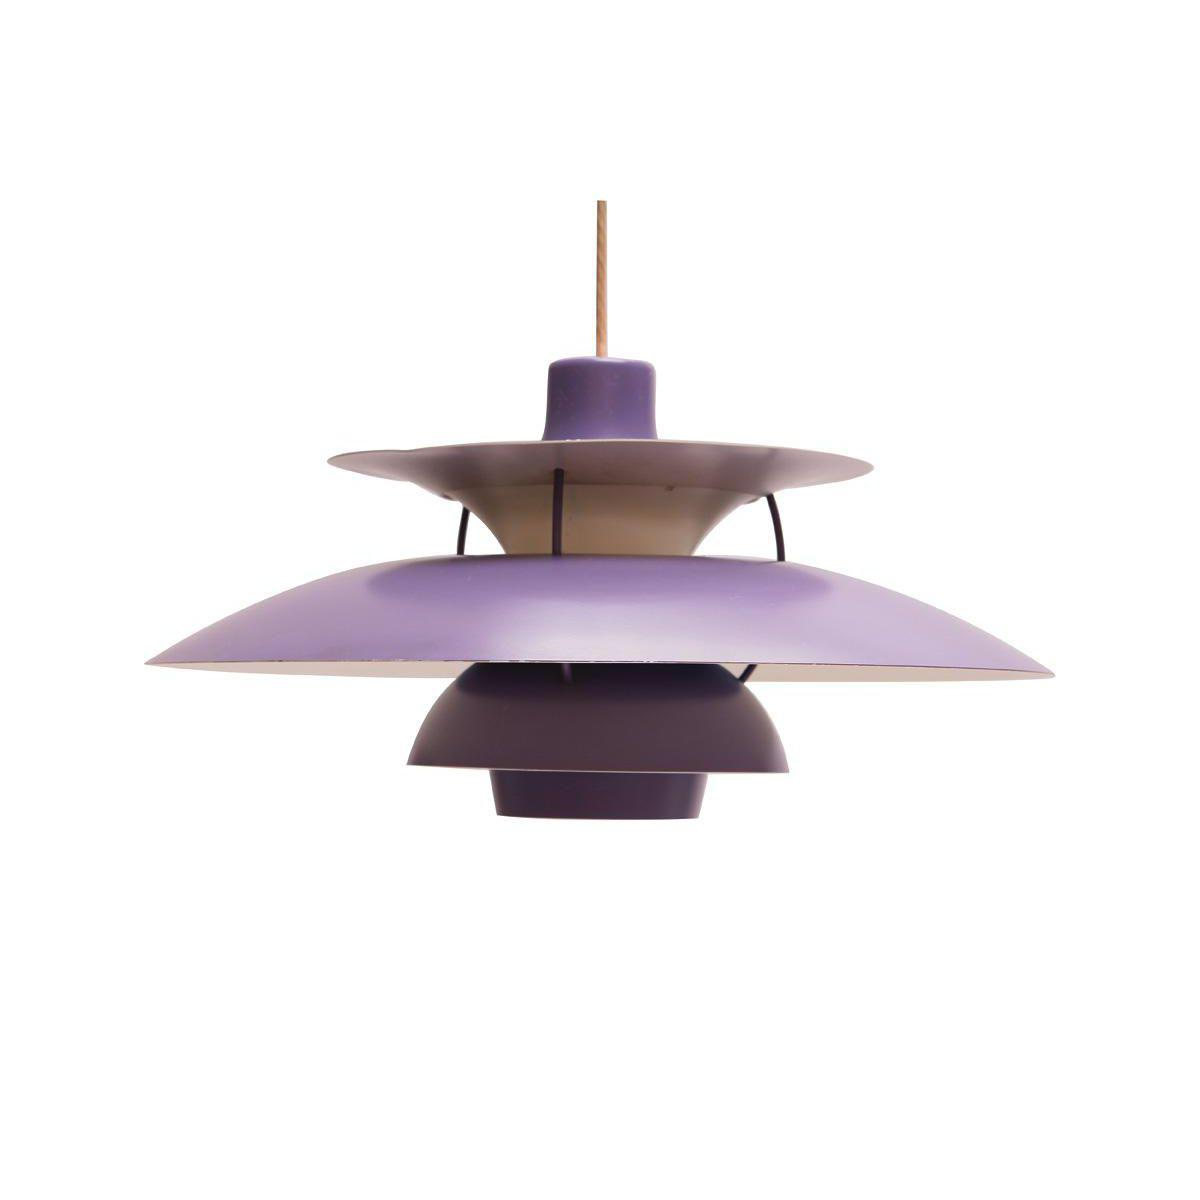 lilac-ph5-hanging-lamp-by-poul-henningsen-for-louis-poulsen-1958-9686